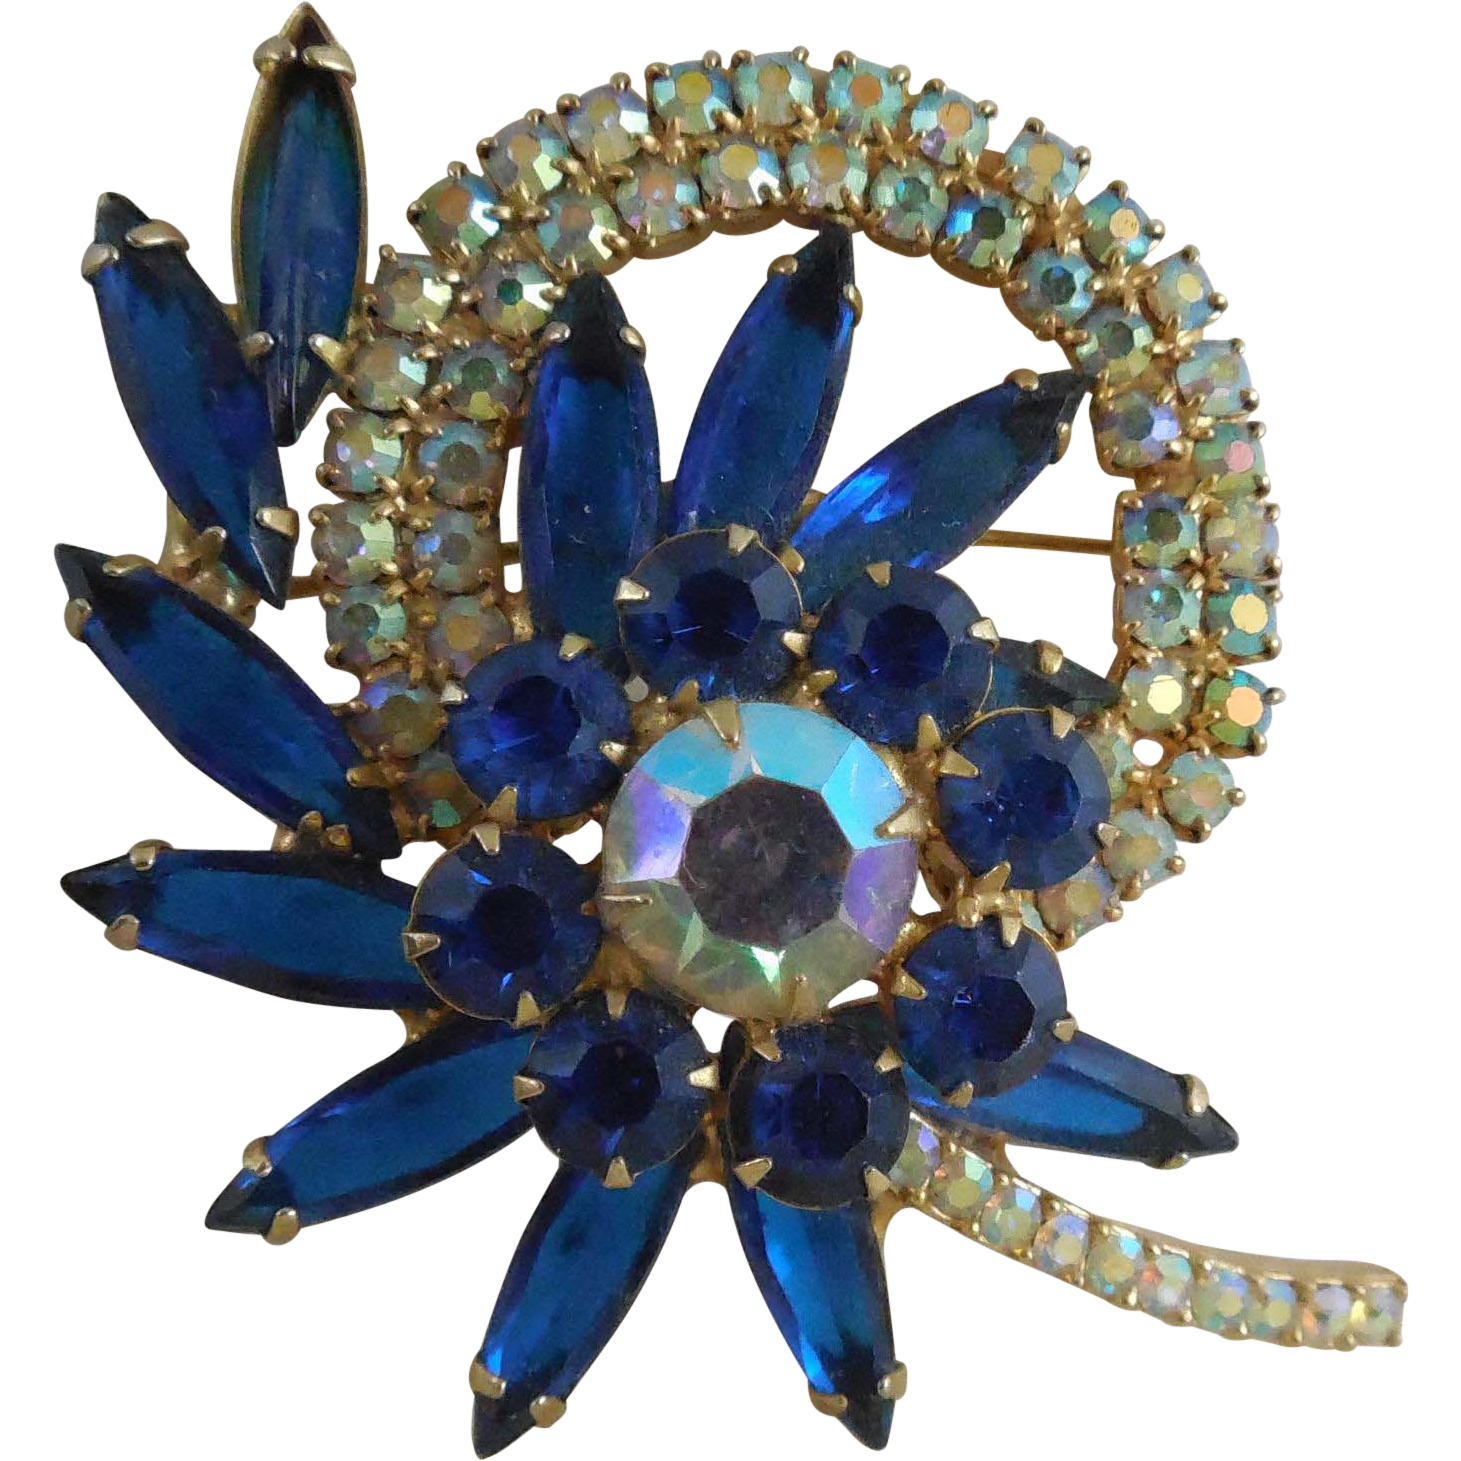 Gorgeous Vintage Brooch With Blue and AB Rhinestones - Large Size